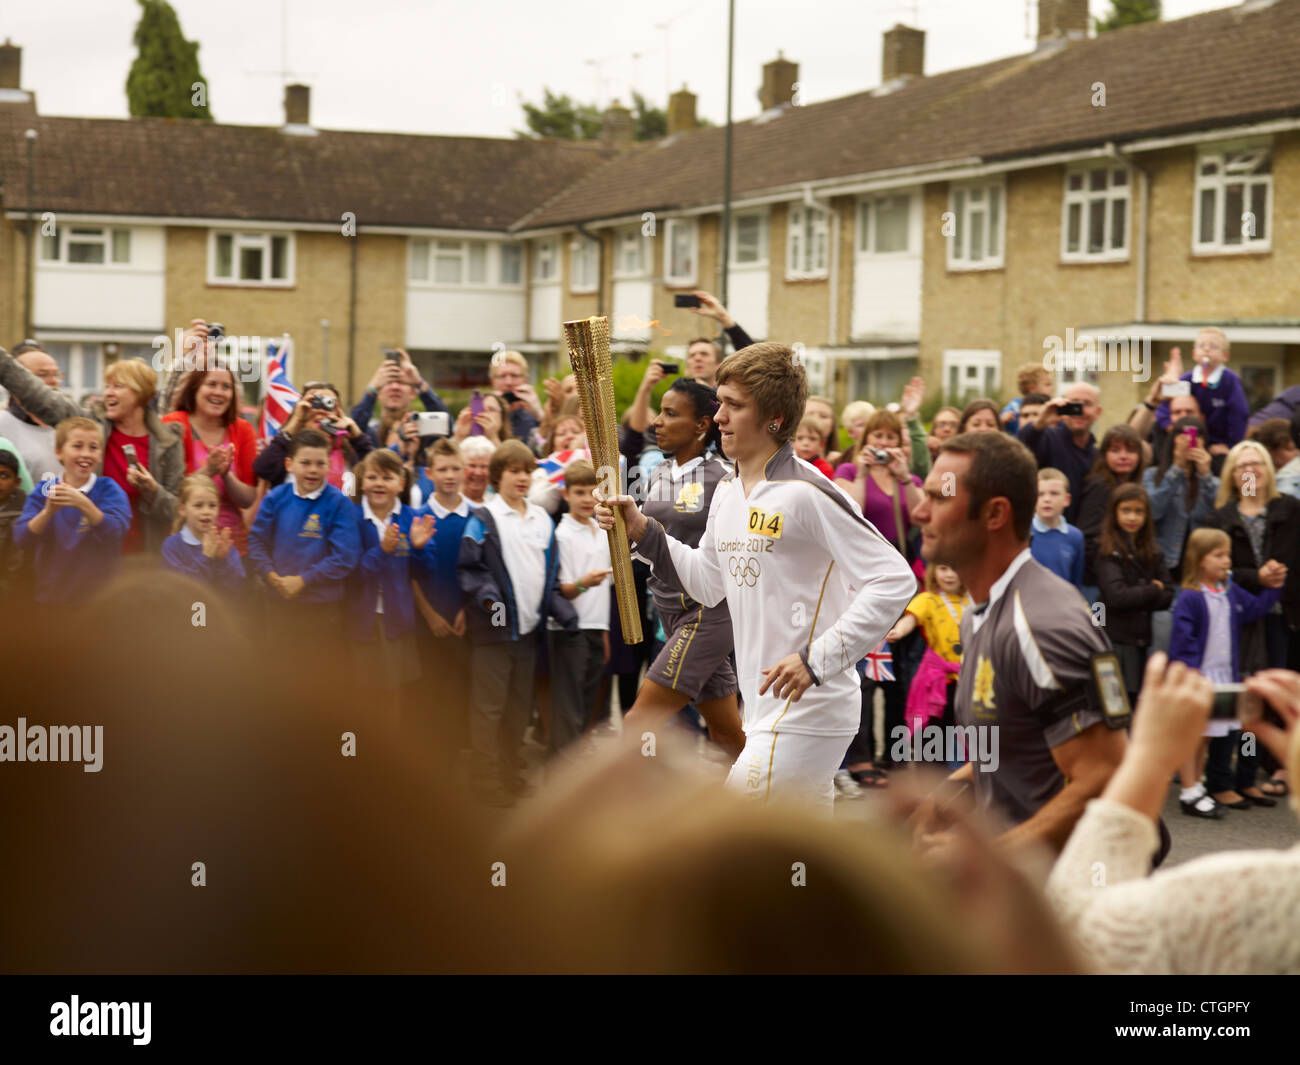 London 2012 Olympic torch relay in Crawley, West Sussex, England, UK - Stock Image